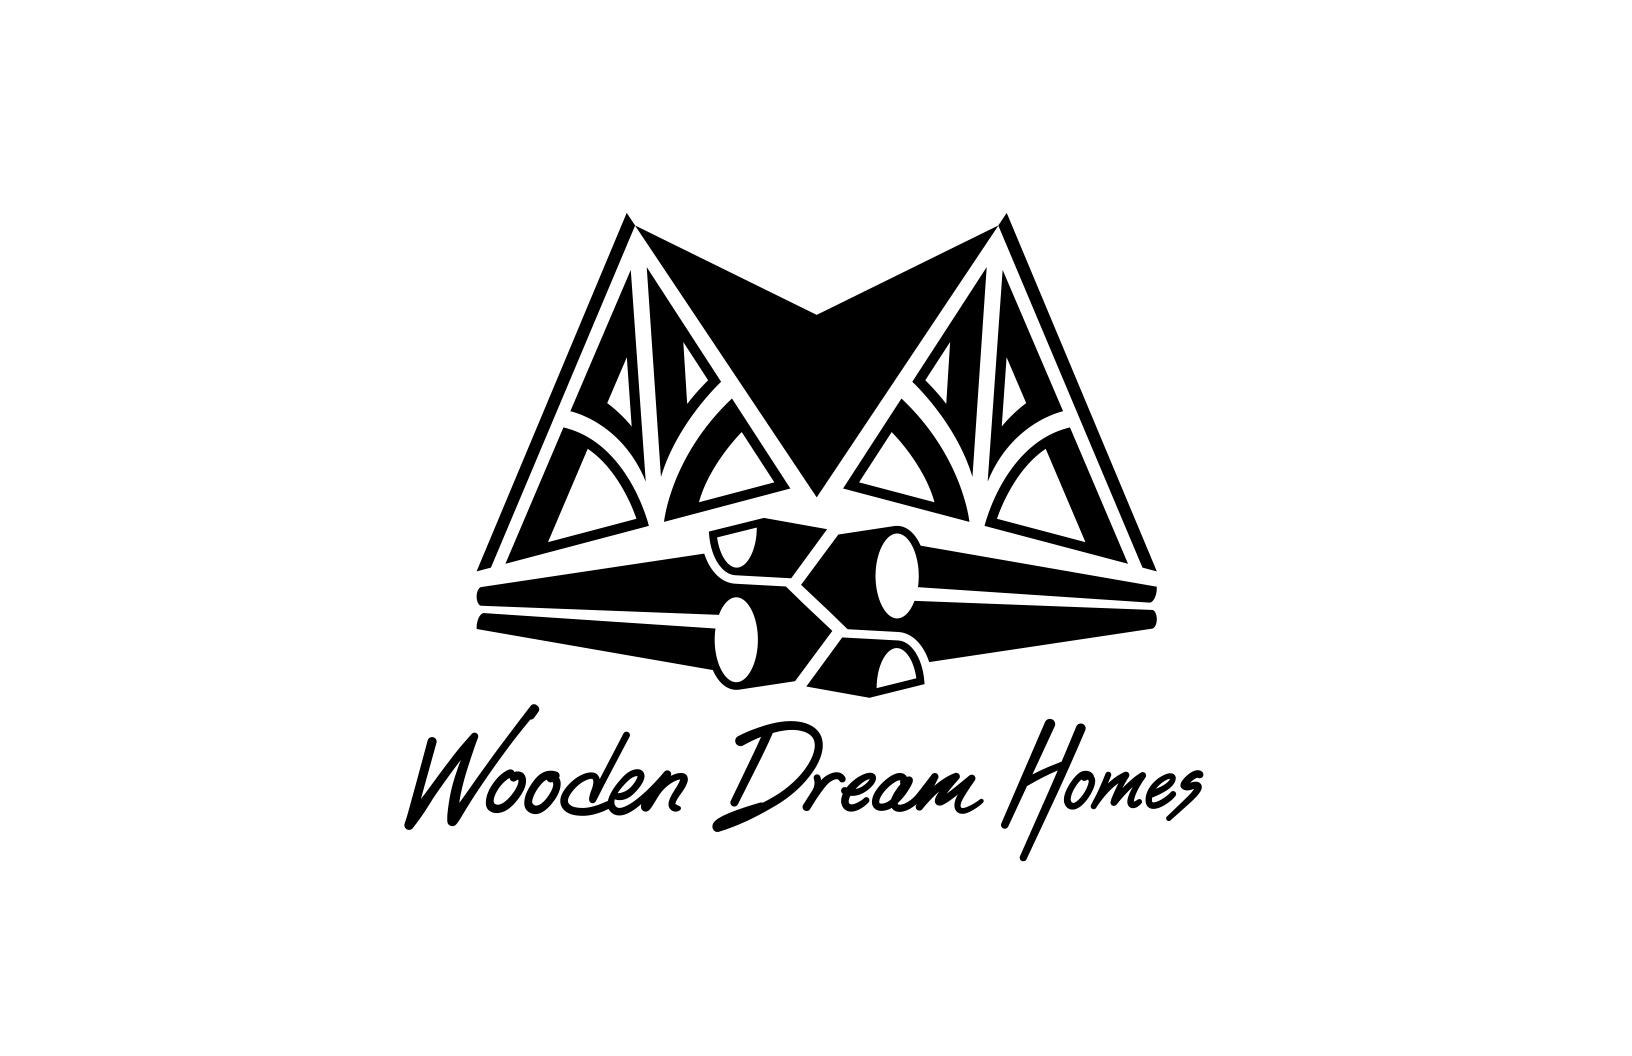 Wooden Dream Homes.jpg